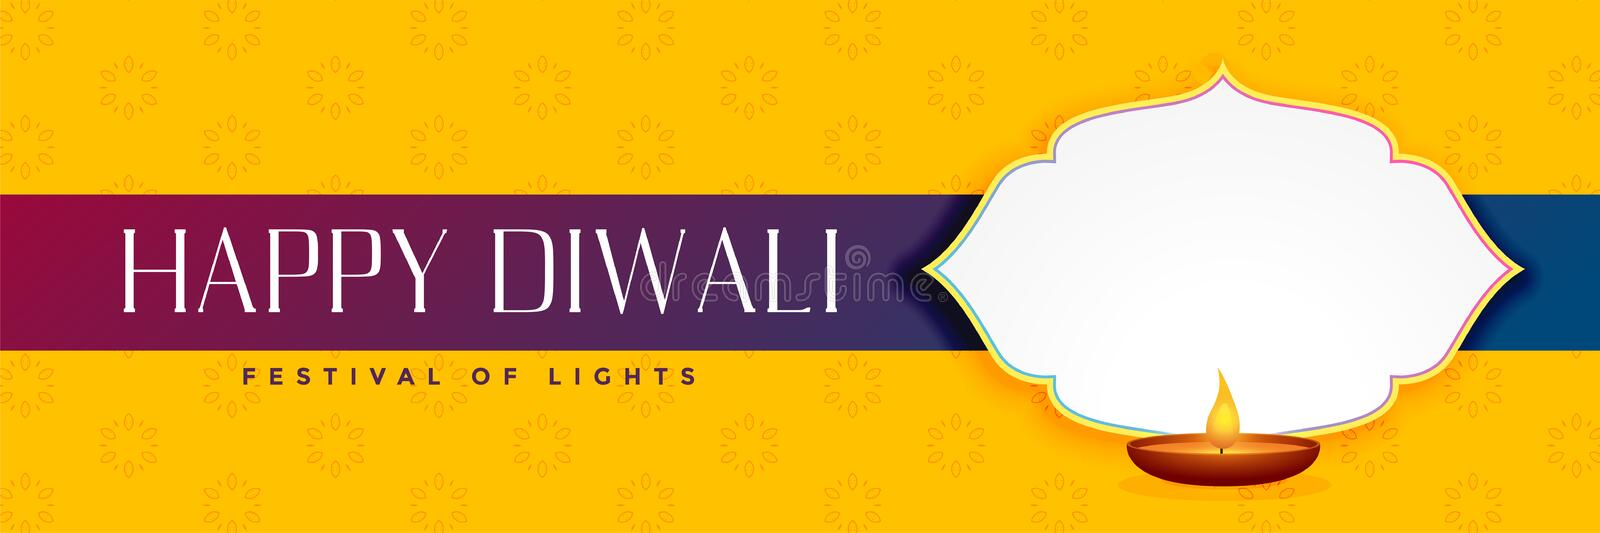 Elegant happy diwali yellow banner with text space stock illustration